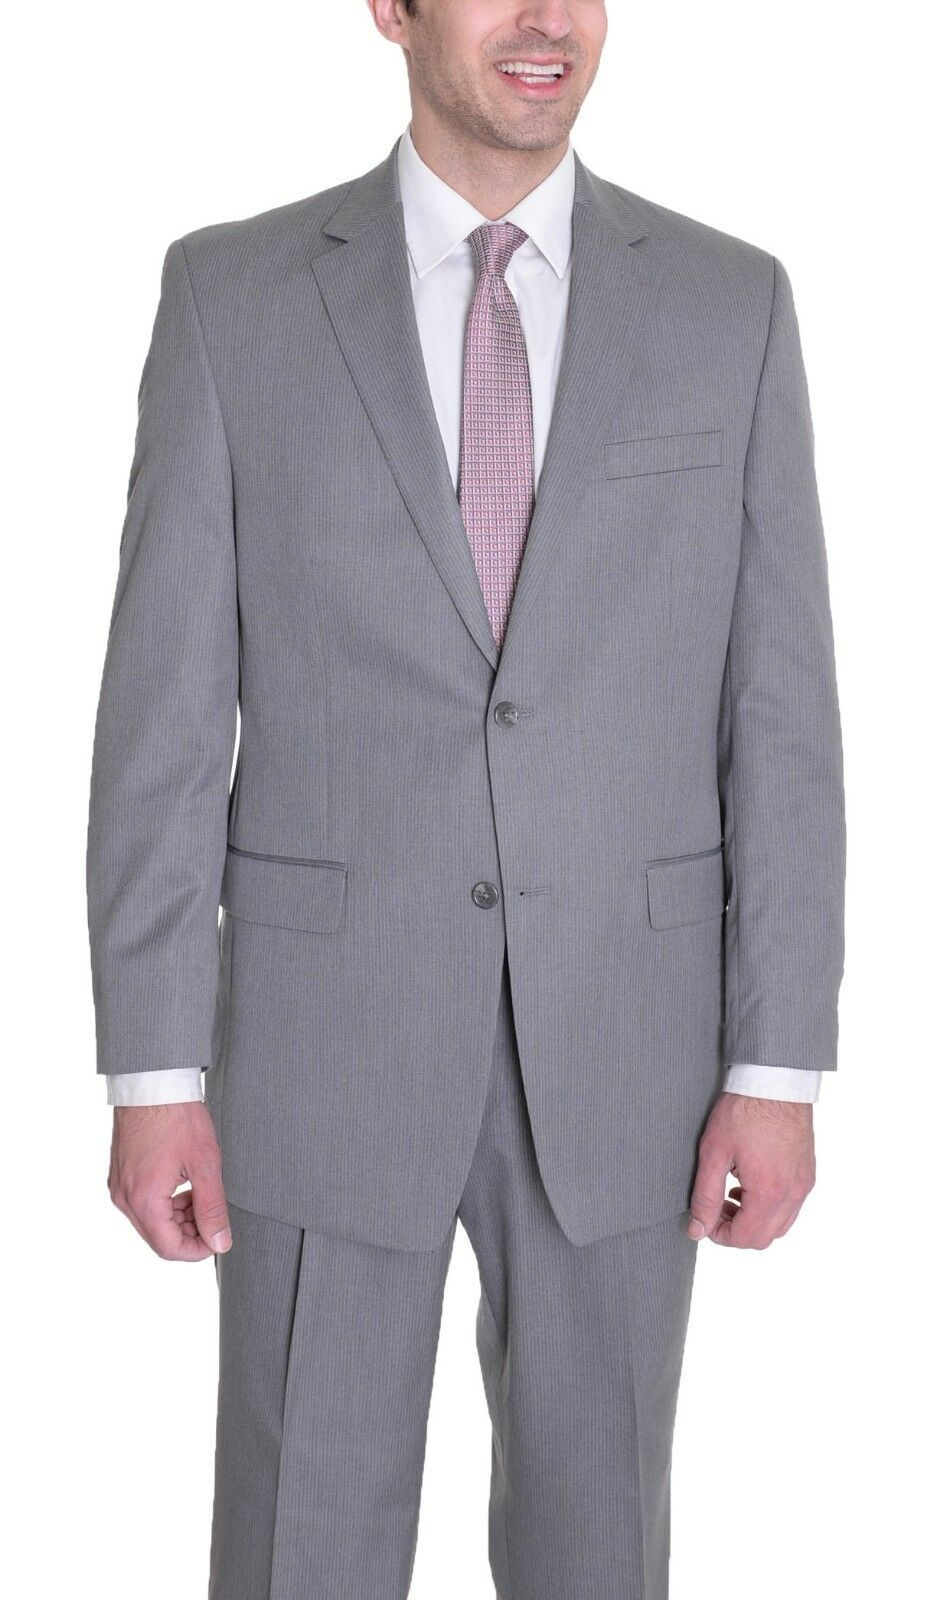 300 Izod grau Striped Classic Fit Two Button Suit 38S 31W